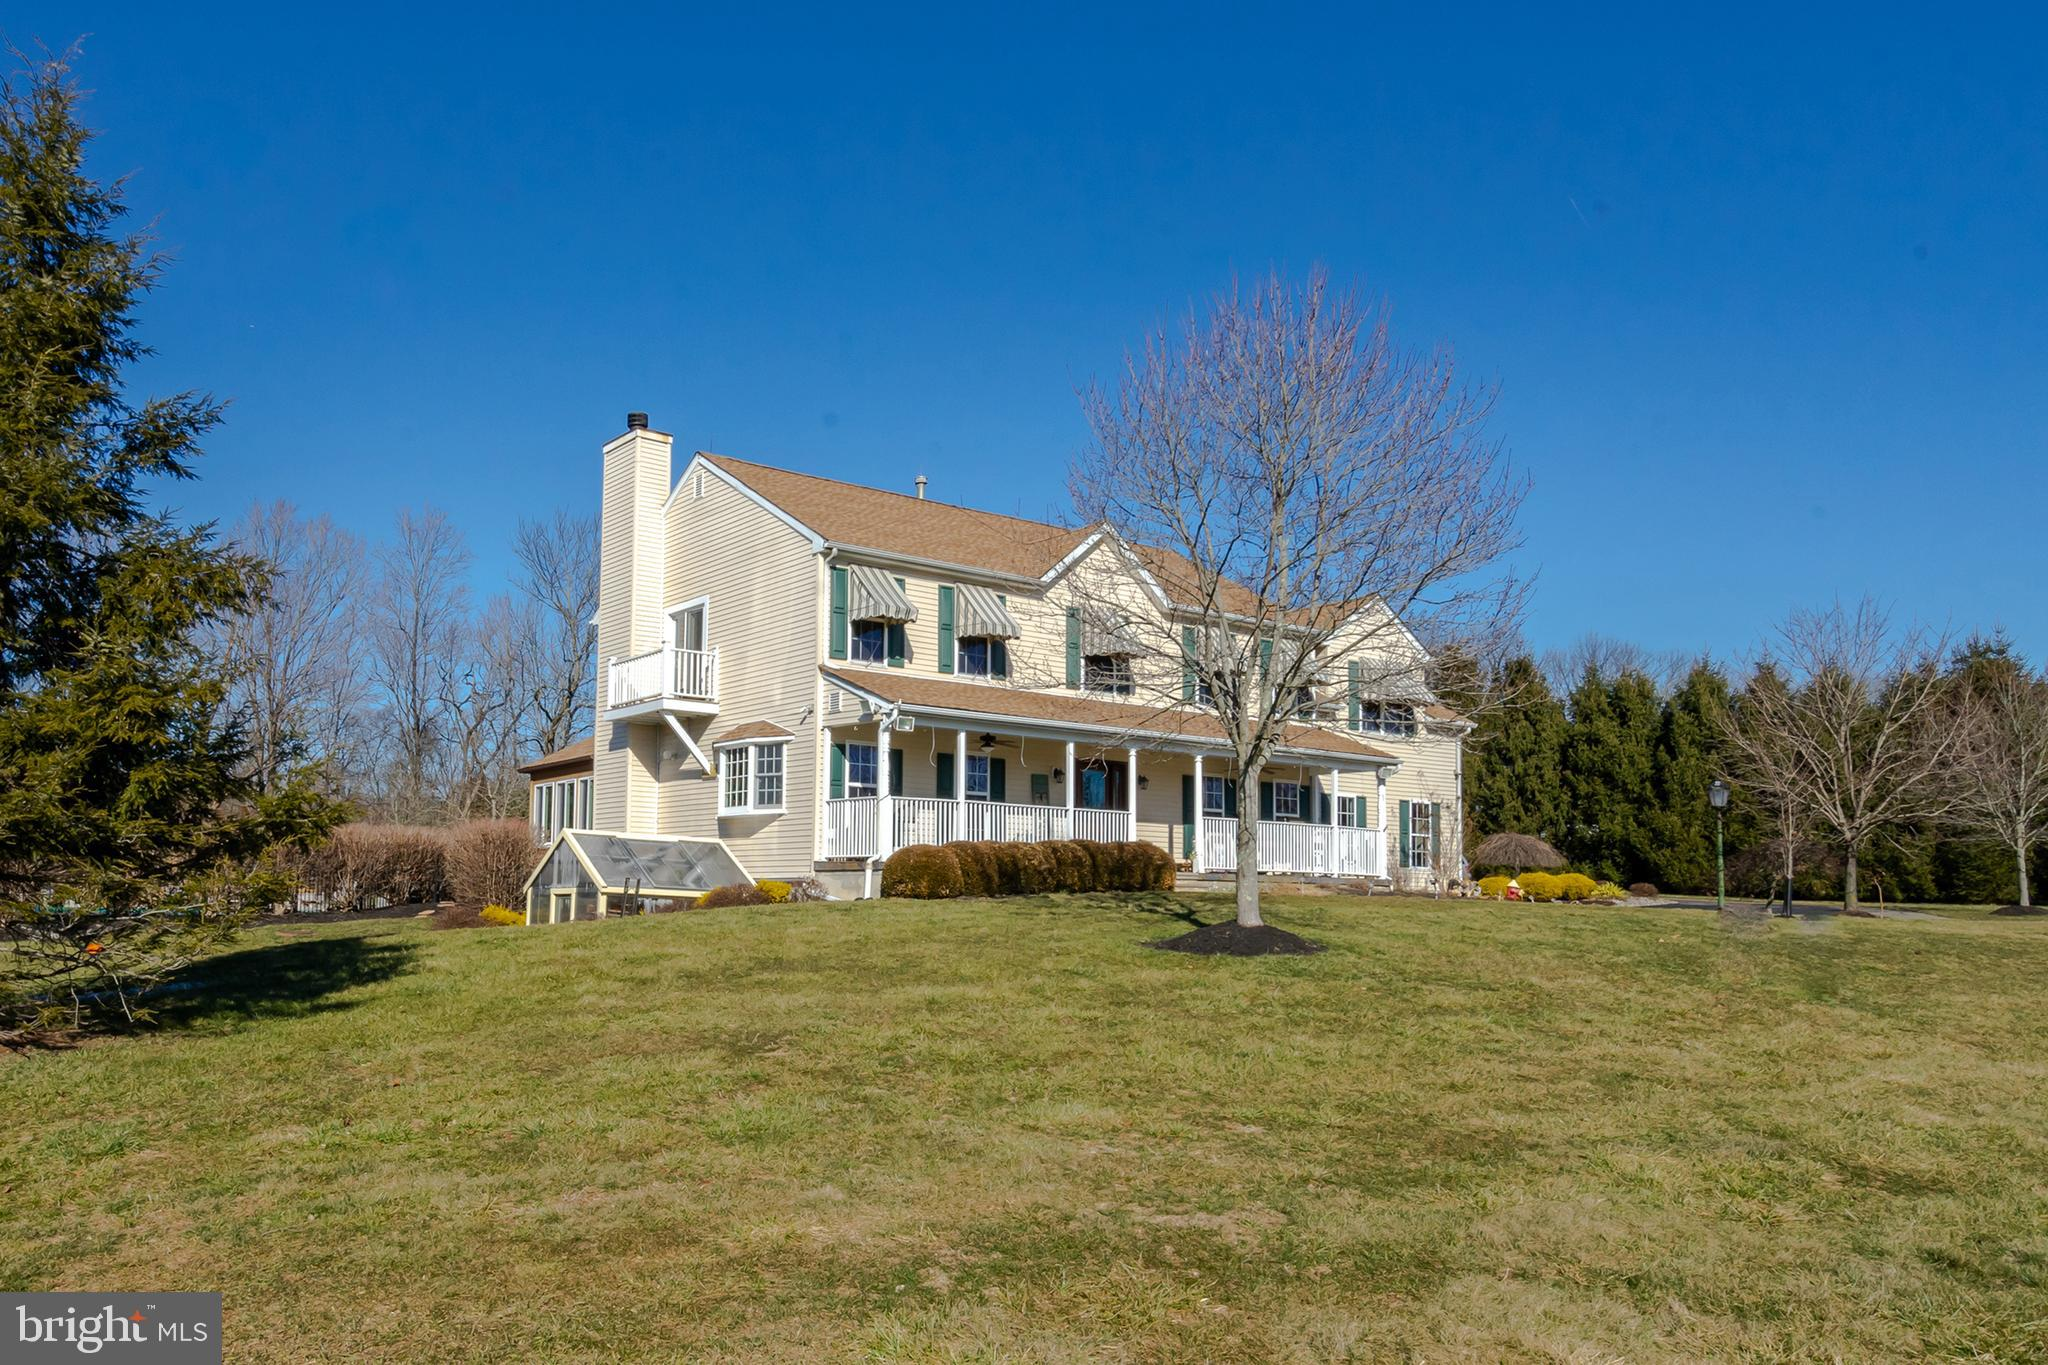 10 HARVEST HILL DRIVE, STOCKTON, NJ 08559